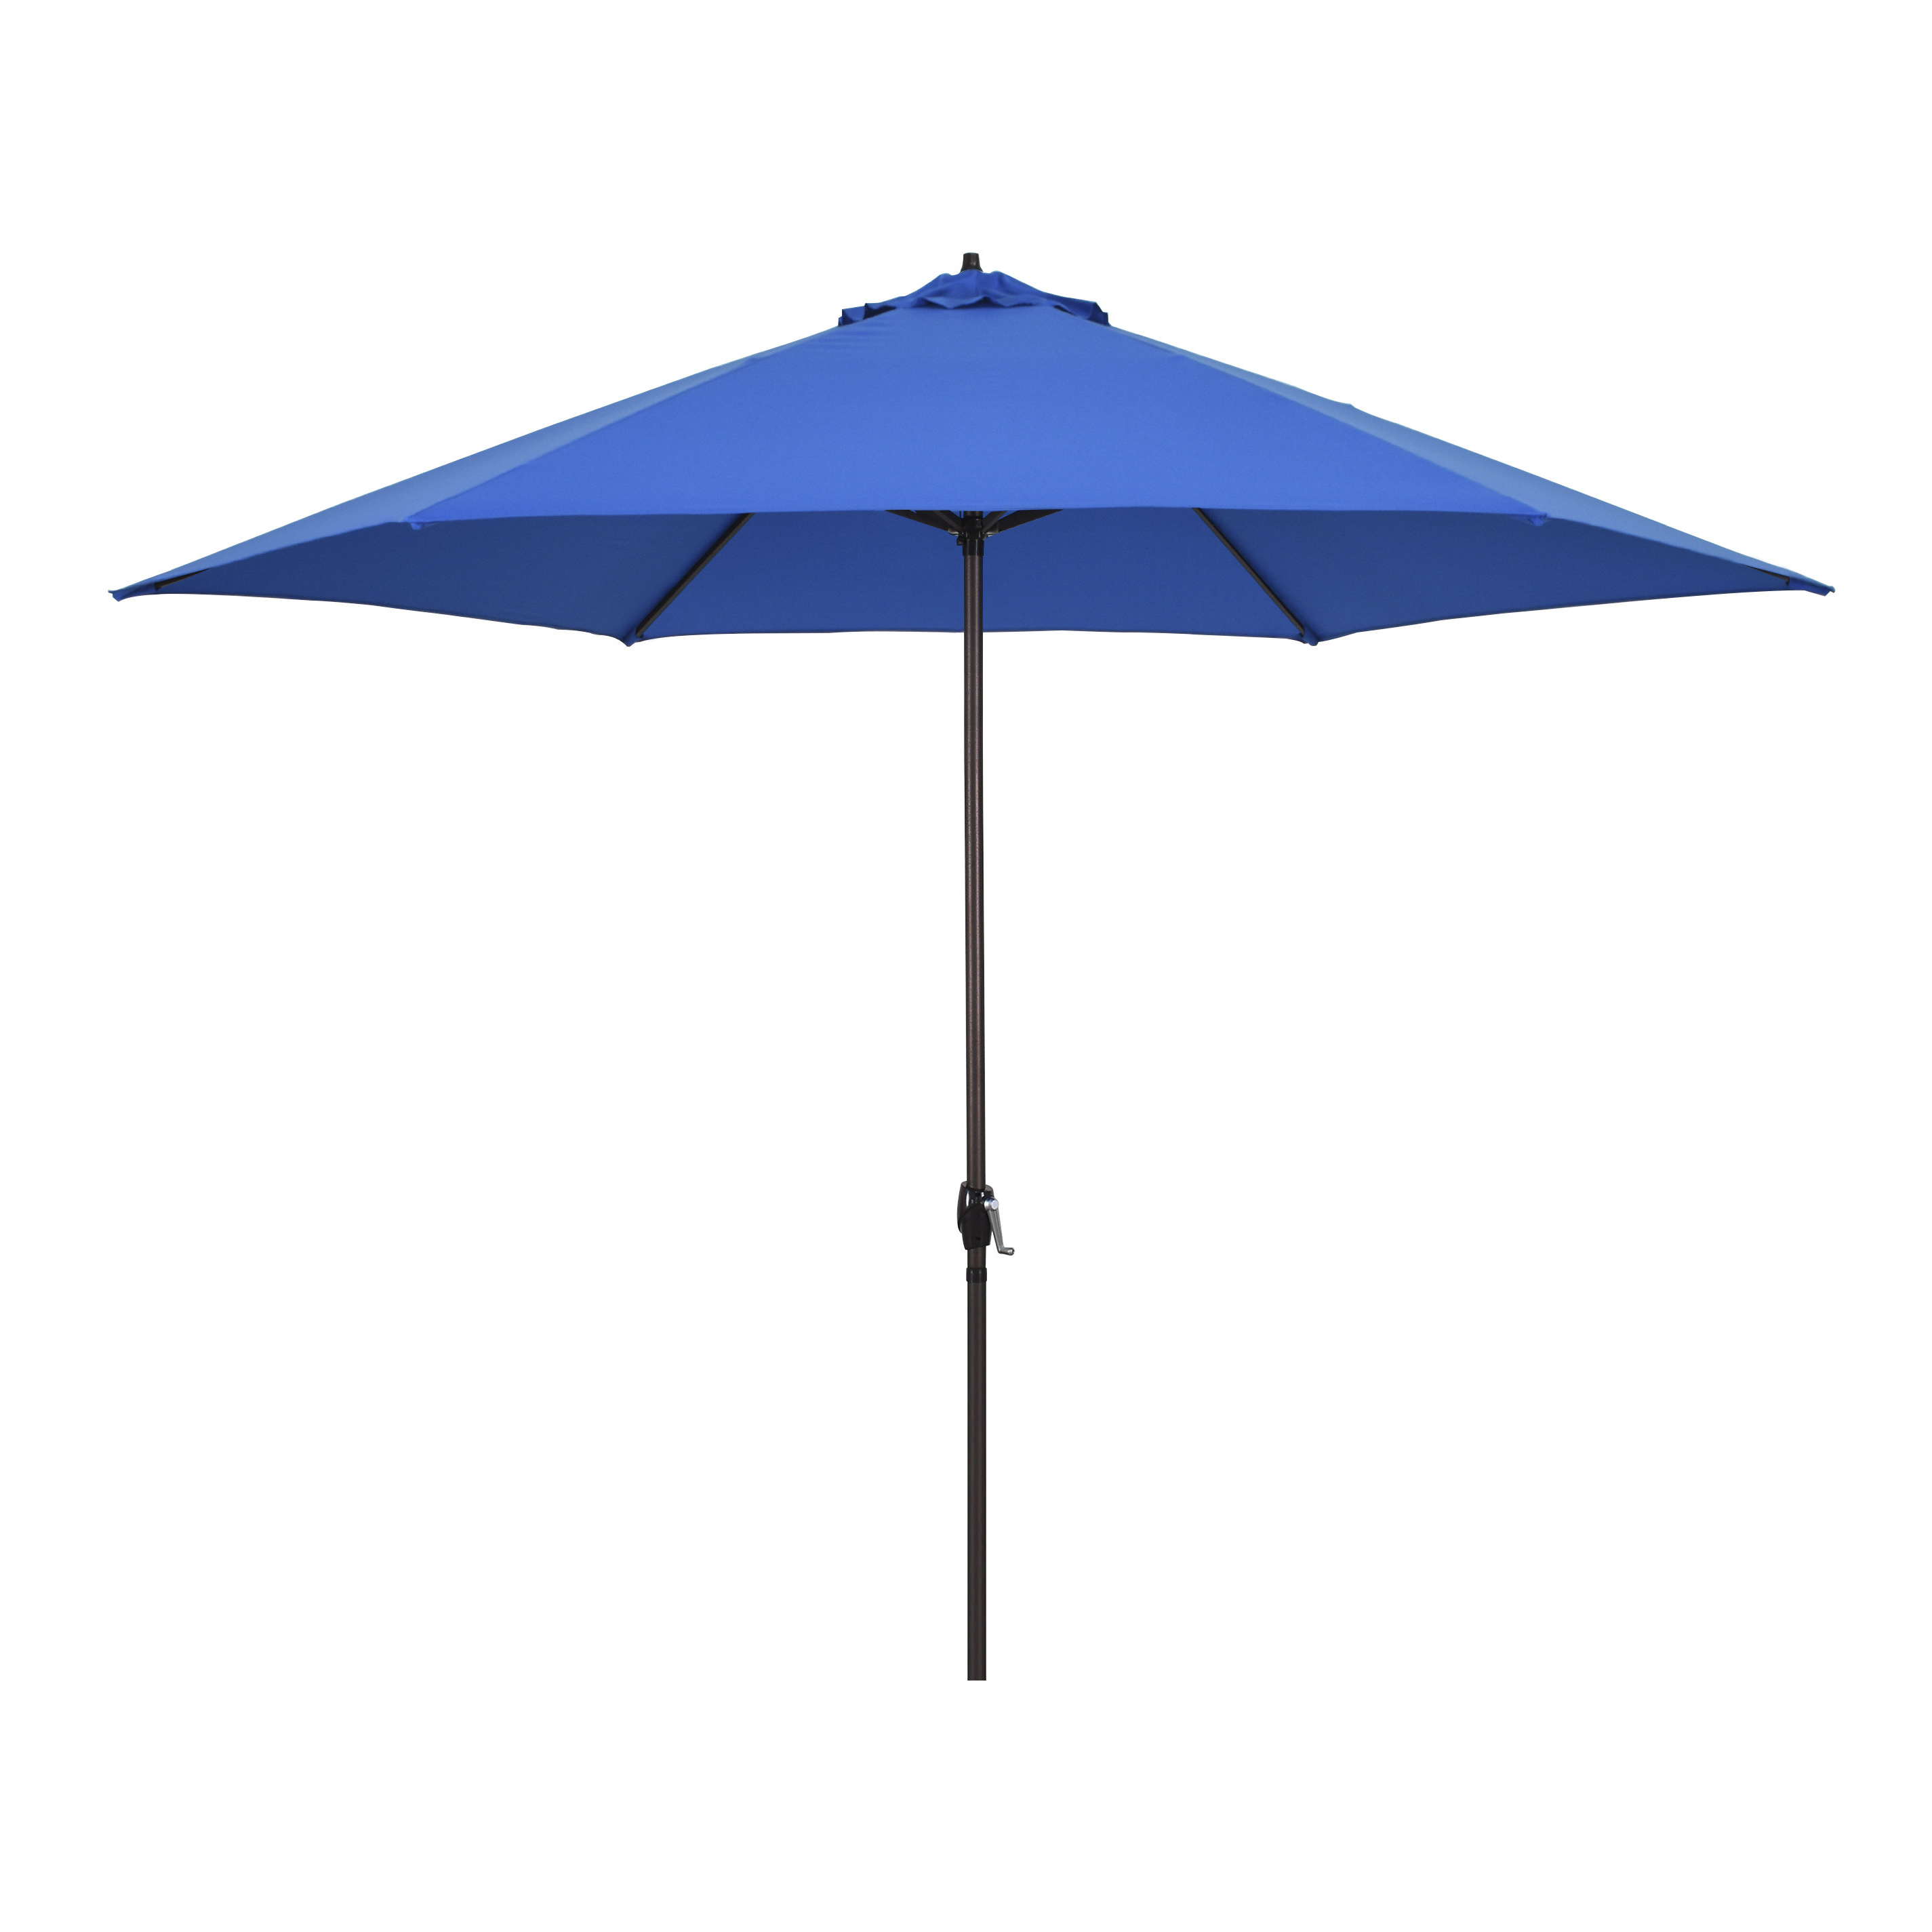 Mucci Madilyn Market Sunbrella Umbrellas Within Preferred Mcdougal 11' Market Umbrella (View 11 of 20)